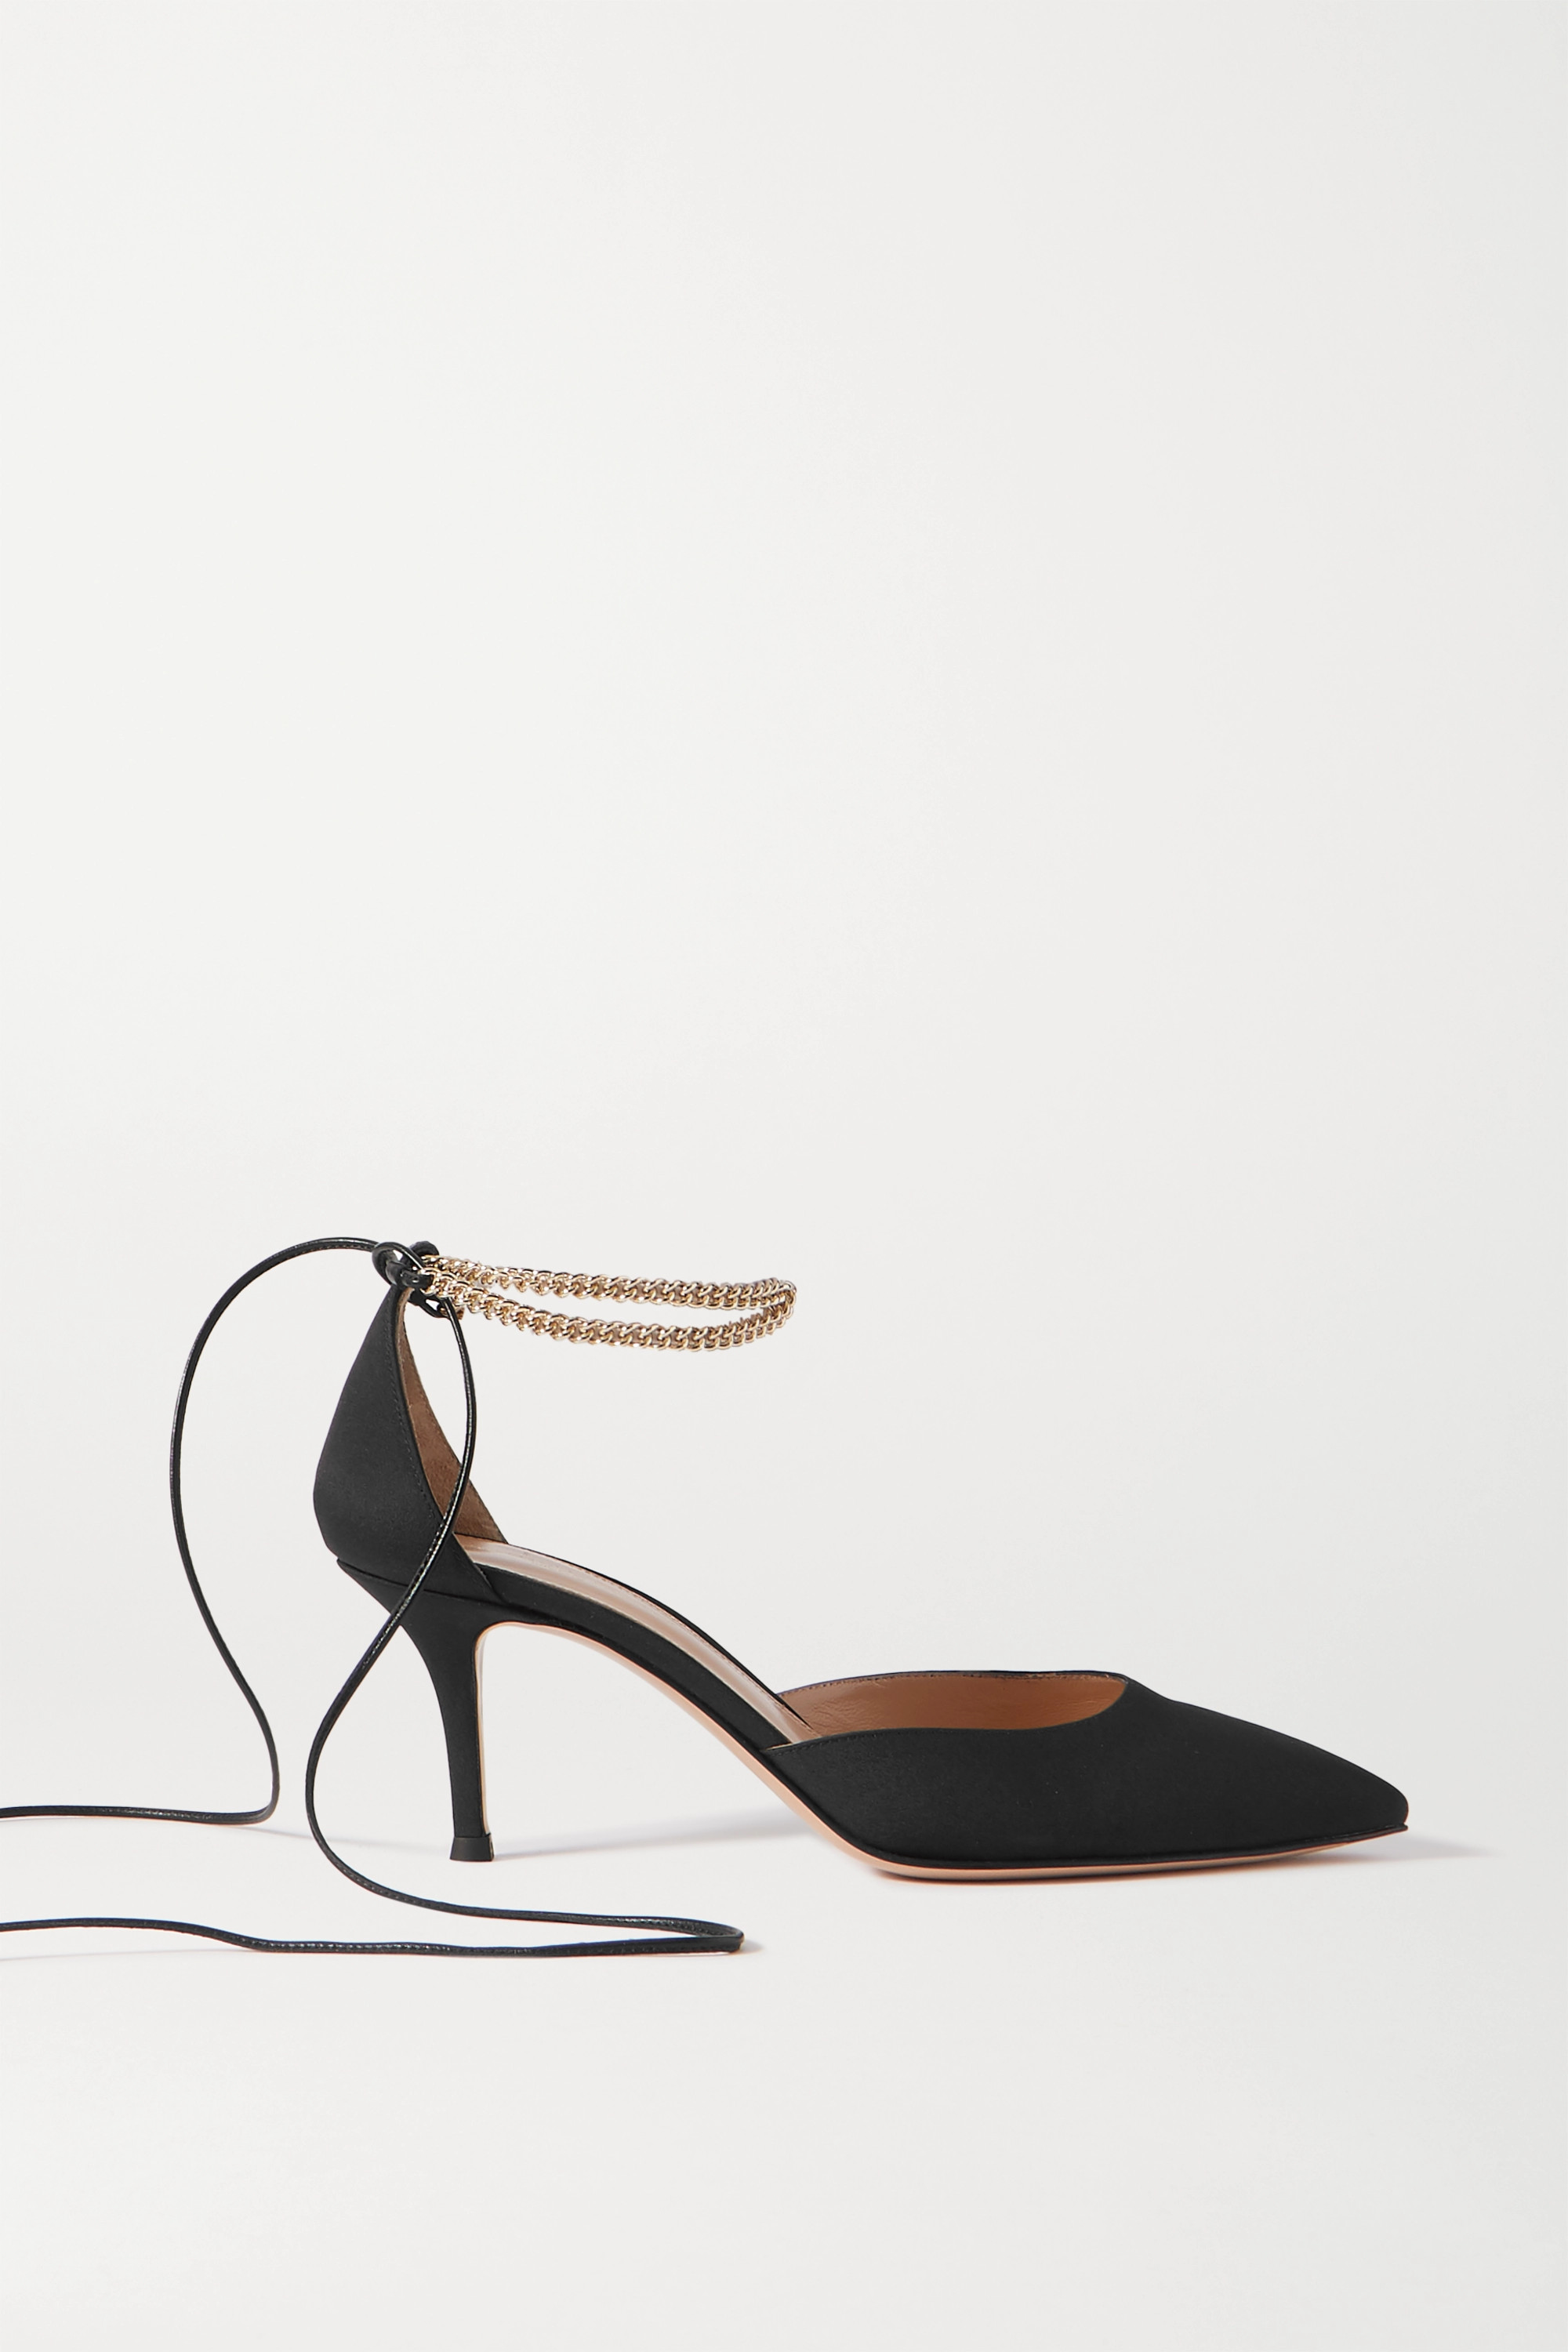 Gianvito Rossi 70 chain and leather-trimmed satin pumps